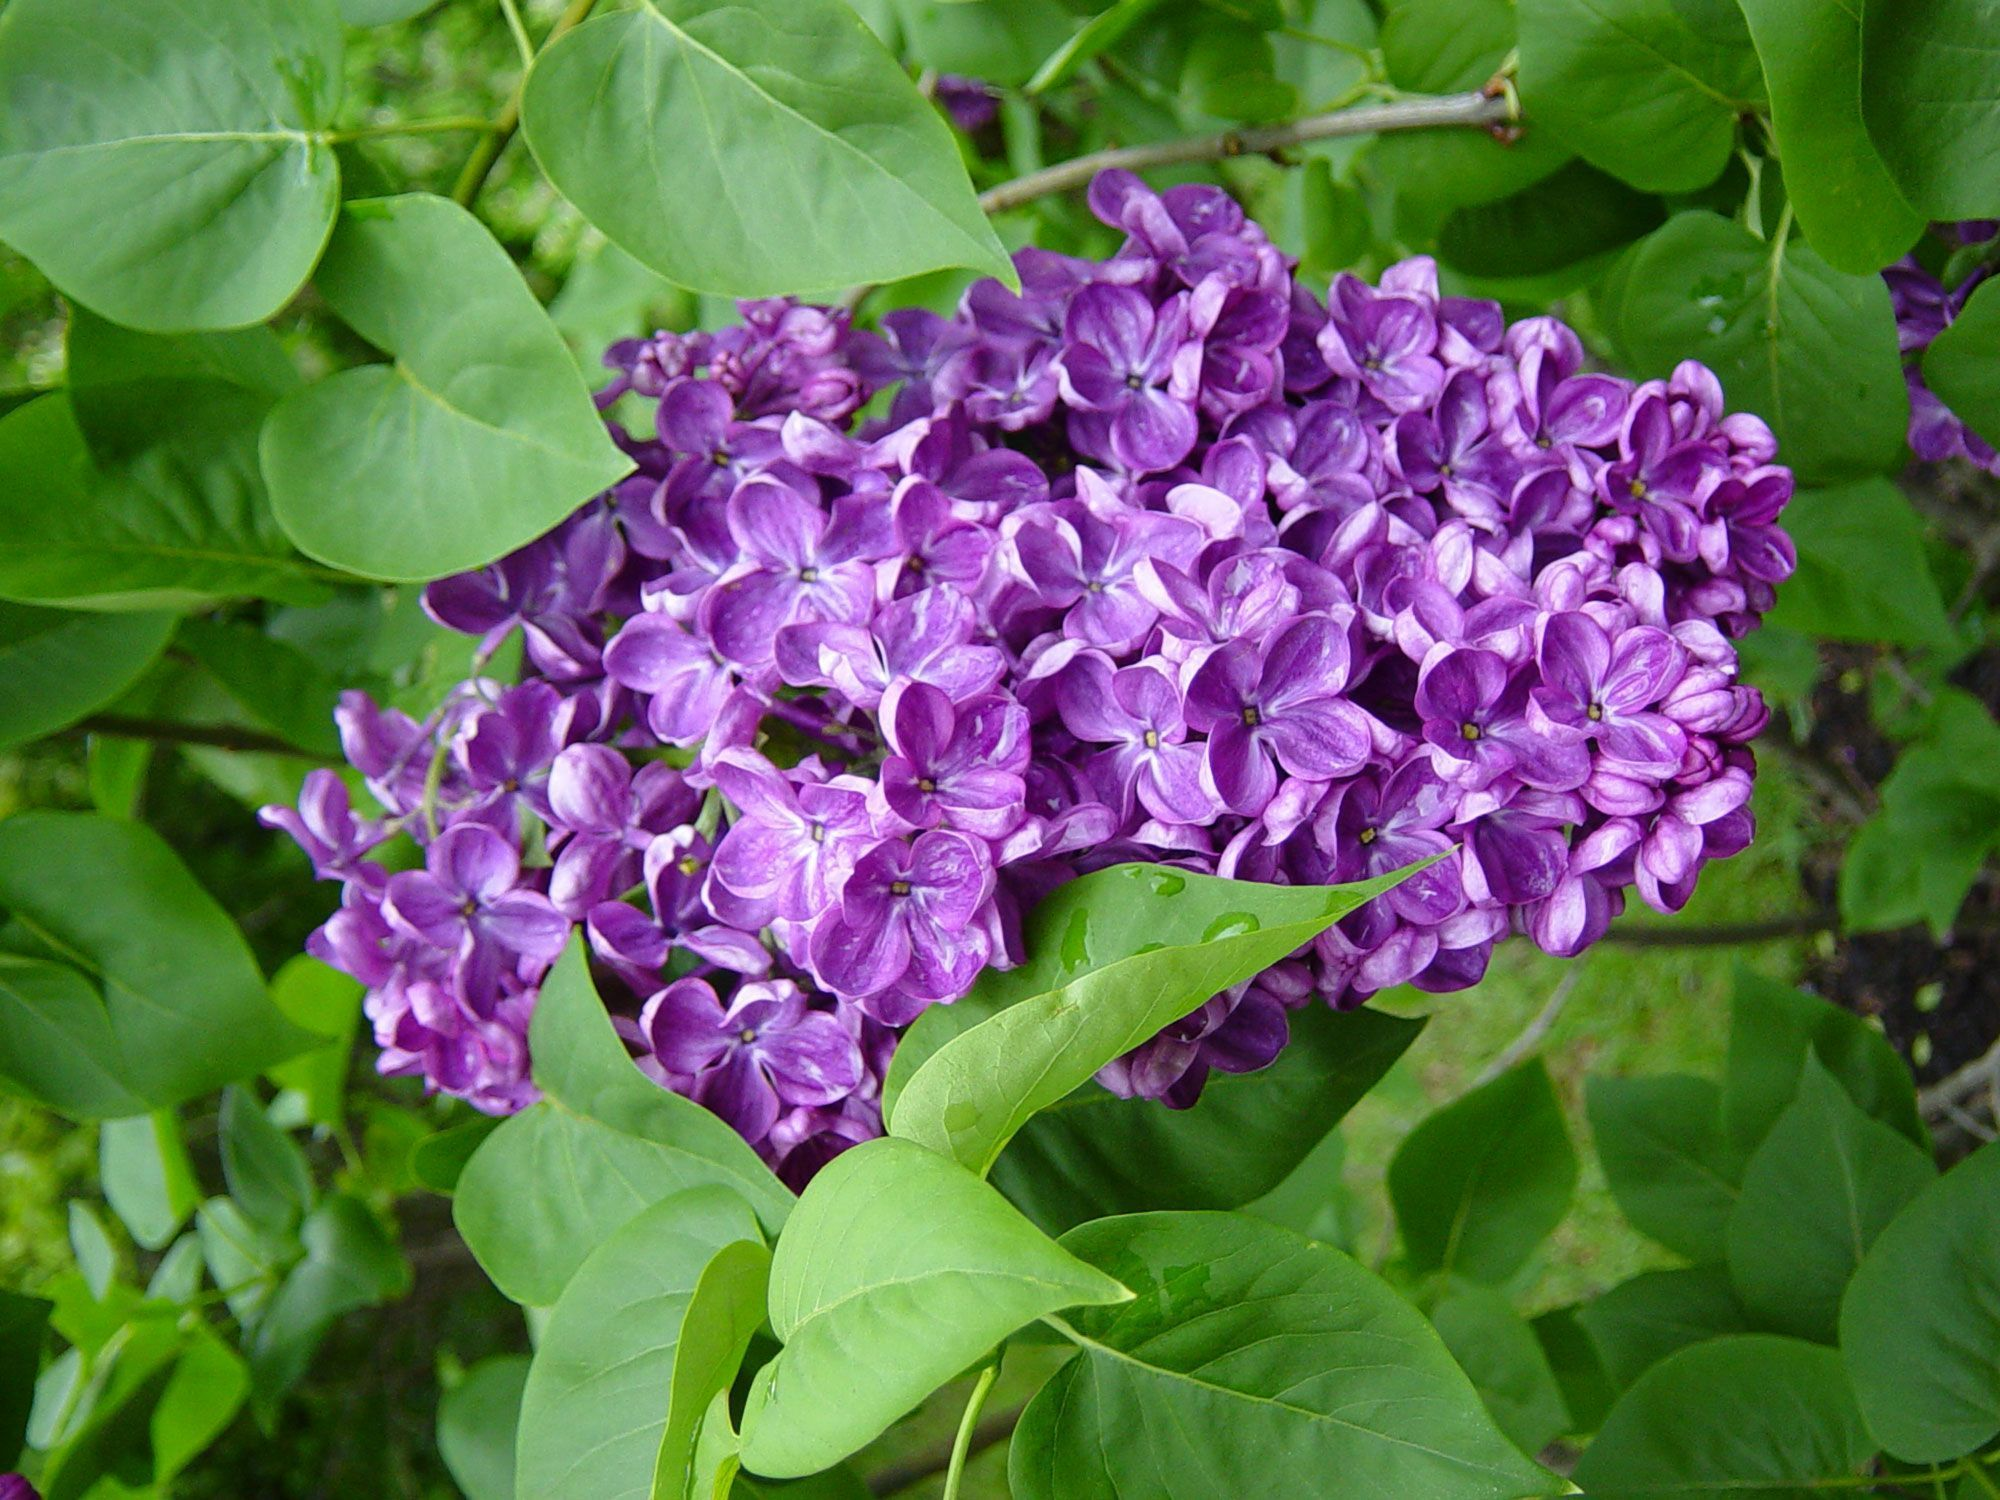 Buy Wisteria Amethyst Falls Online At Garden Goods Direct Your Online Garden Center High Quality Low Price Flowering Plant Lilac Bushes Plants Garden Shrubs